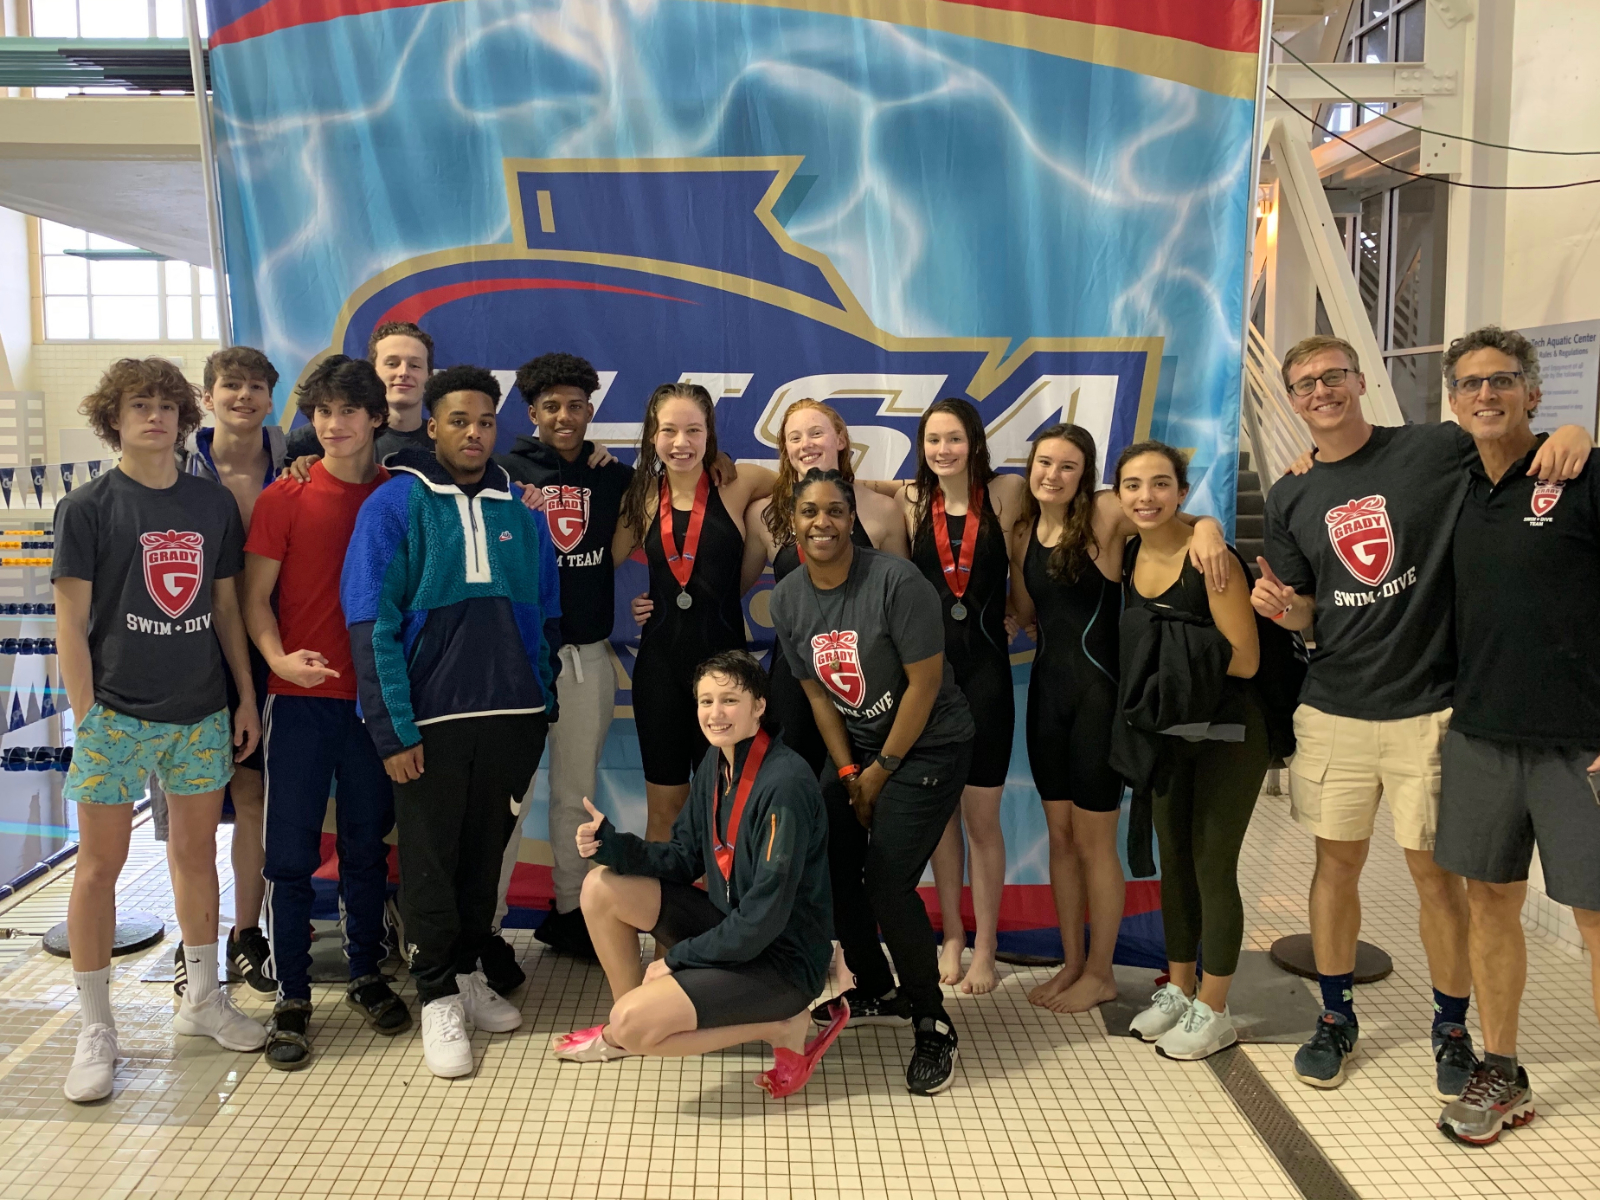 Record Setting Day for Knights at Georgia State Swimming Championship